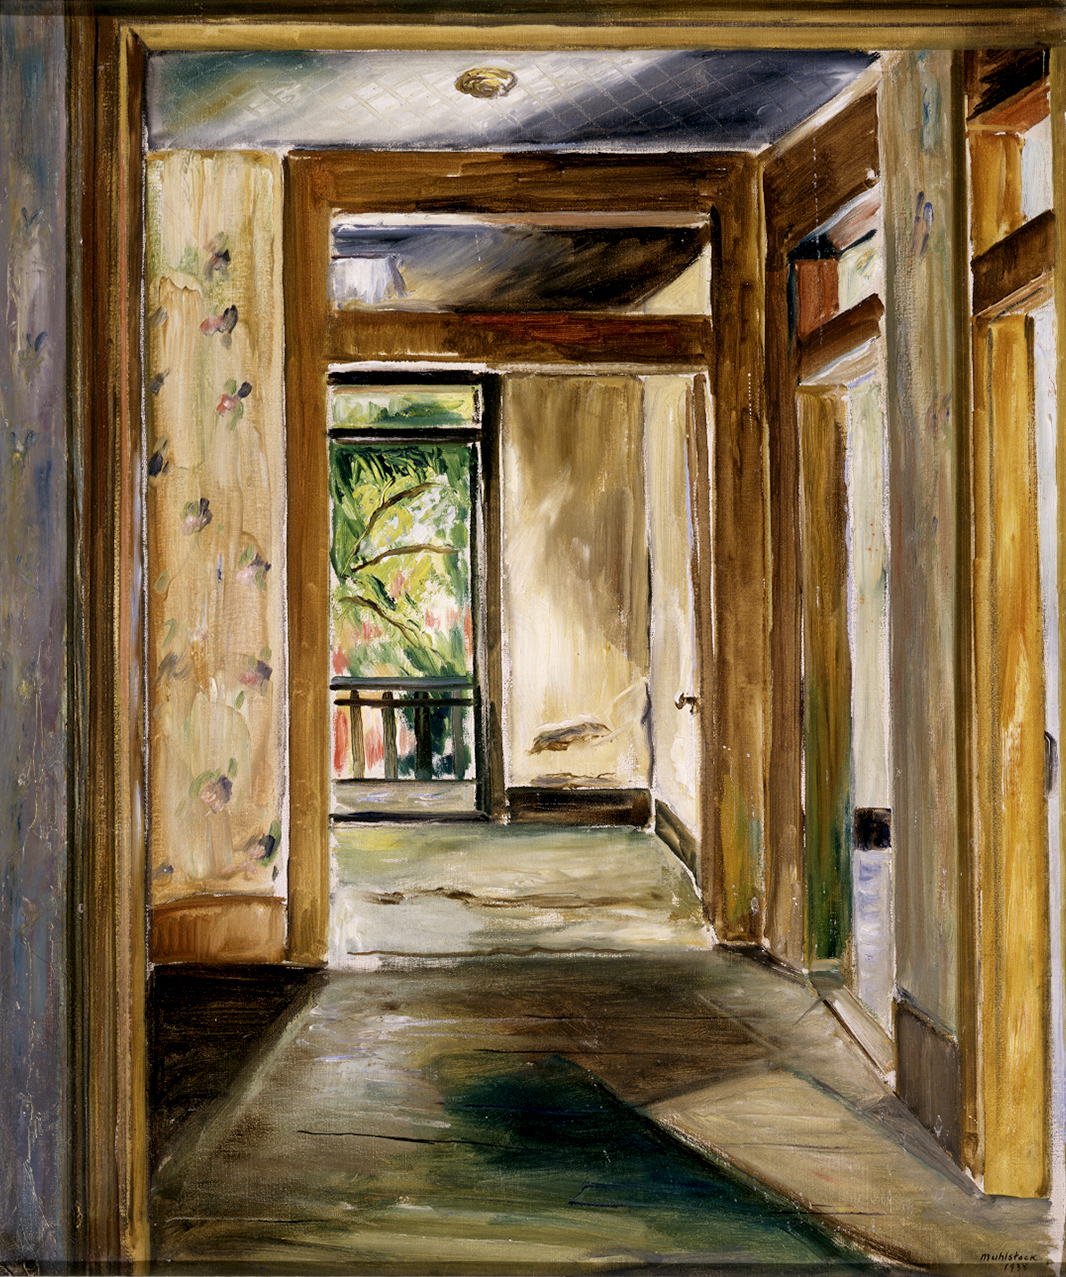 This painting portrays a succession of empty rooms. Some of the walls are depicted in sweeping brushstrokes, while others are coloured like patterned wallpaper. In the background, beyond an open doorway, a balcony and a tree are visible.